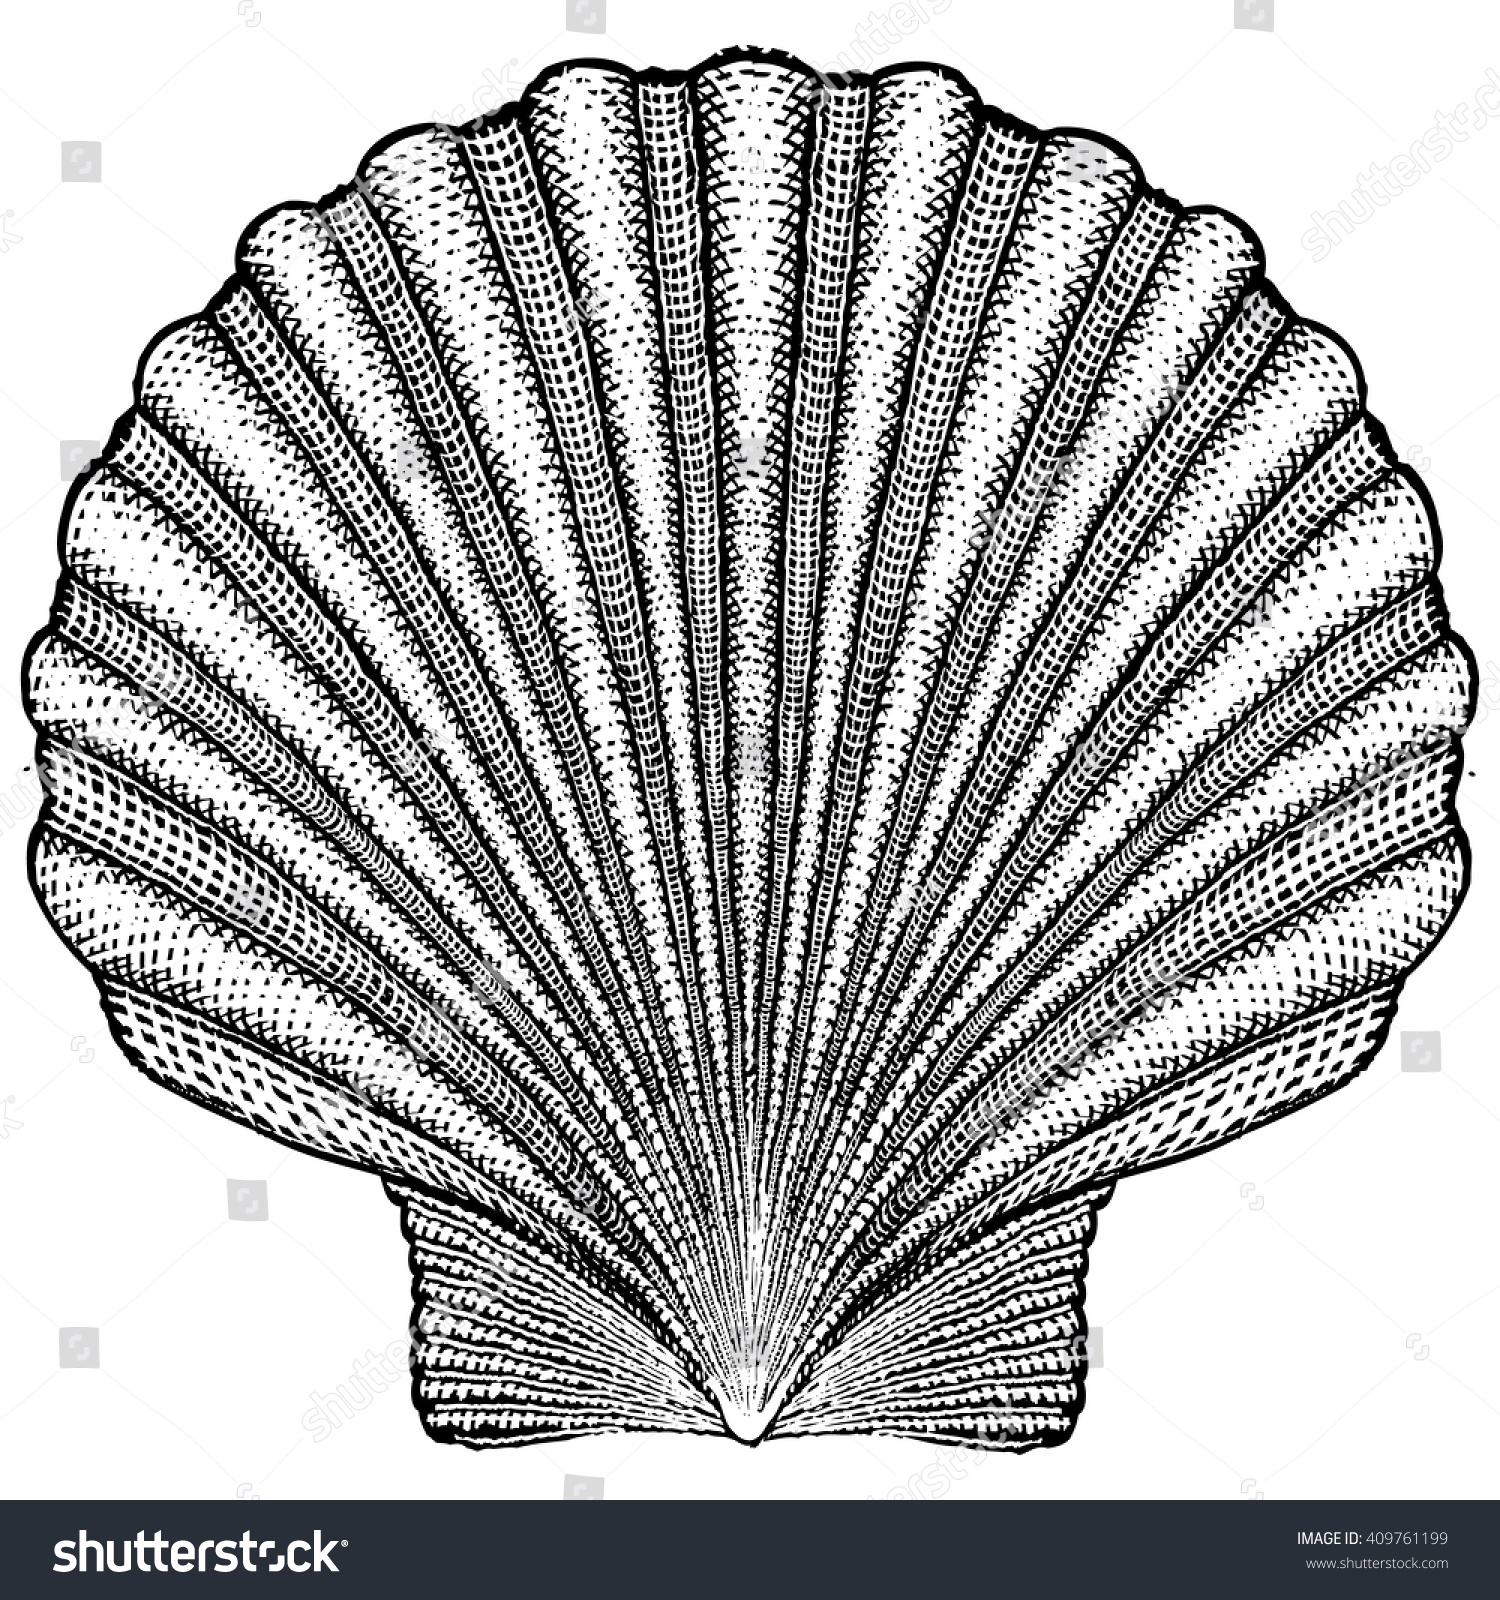 Scallop shell illustration stock vector 409761199 shutterstock scallop shell illustration biocorpaavc Image collections